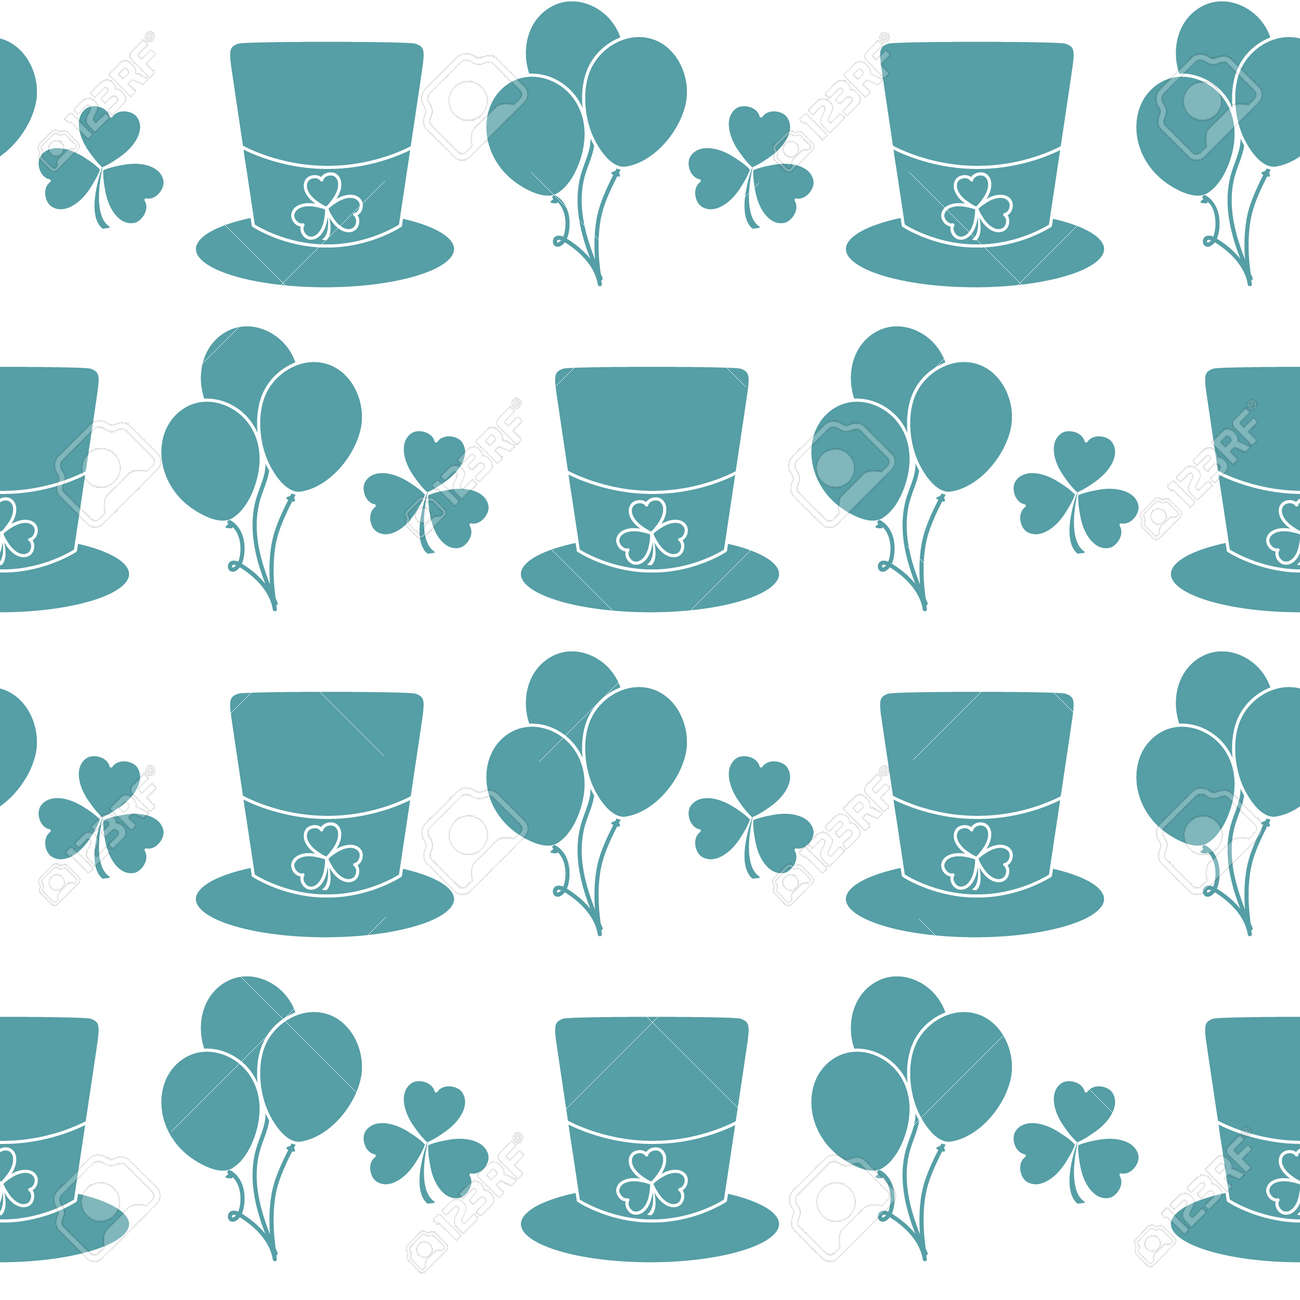 Vector seamless pattern Happy St. Patrick's Day illustration Ireland Shamrock Hat Balloon Irish Holiday Party Festive background Design for greeting card, fabric, print, wrapping paper - 169848250